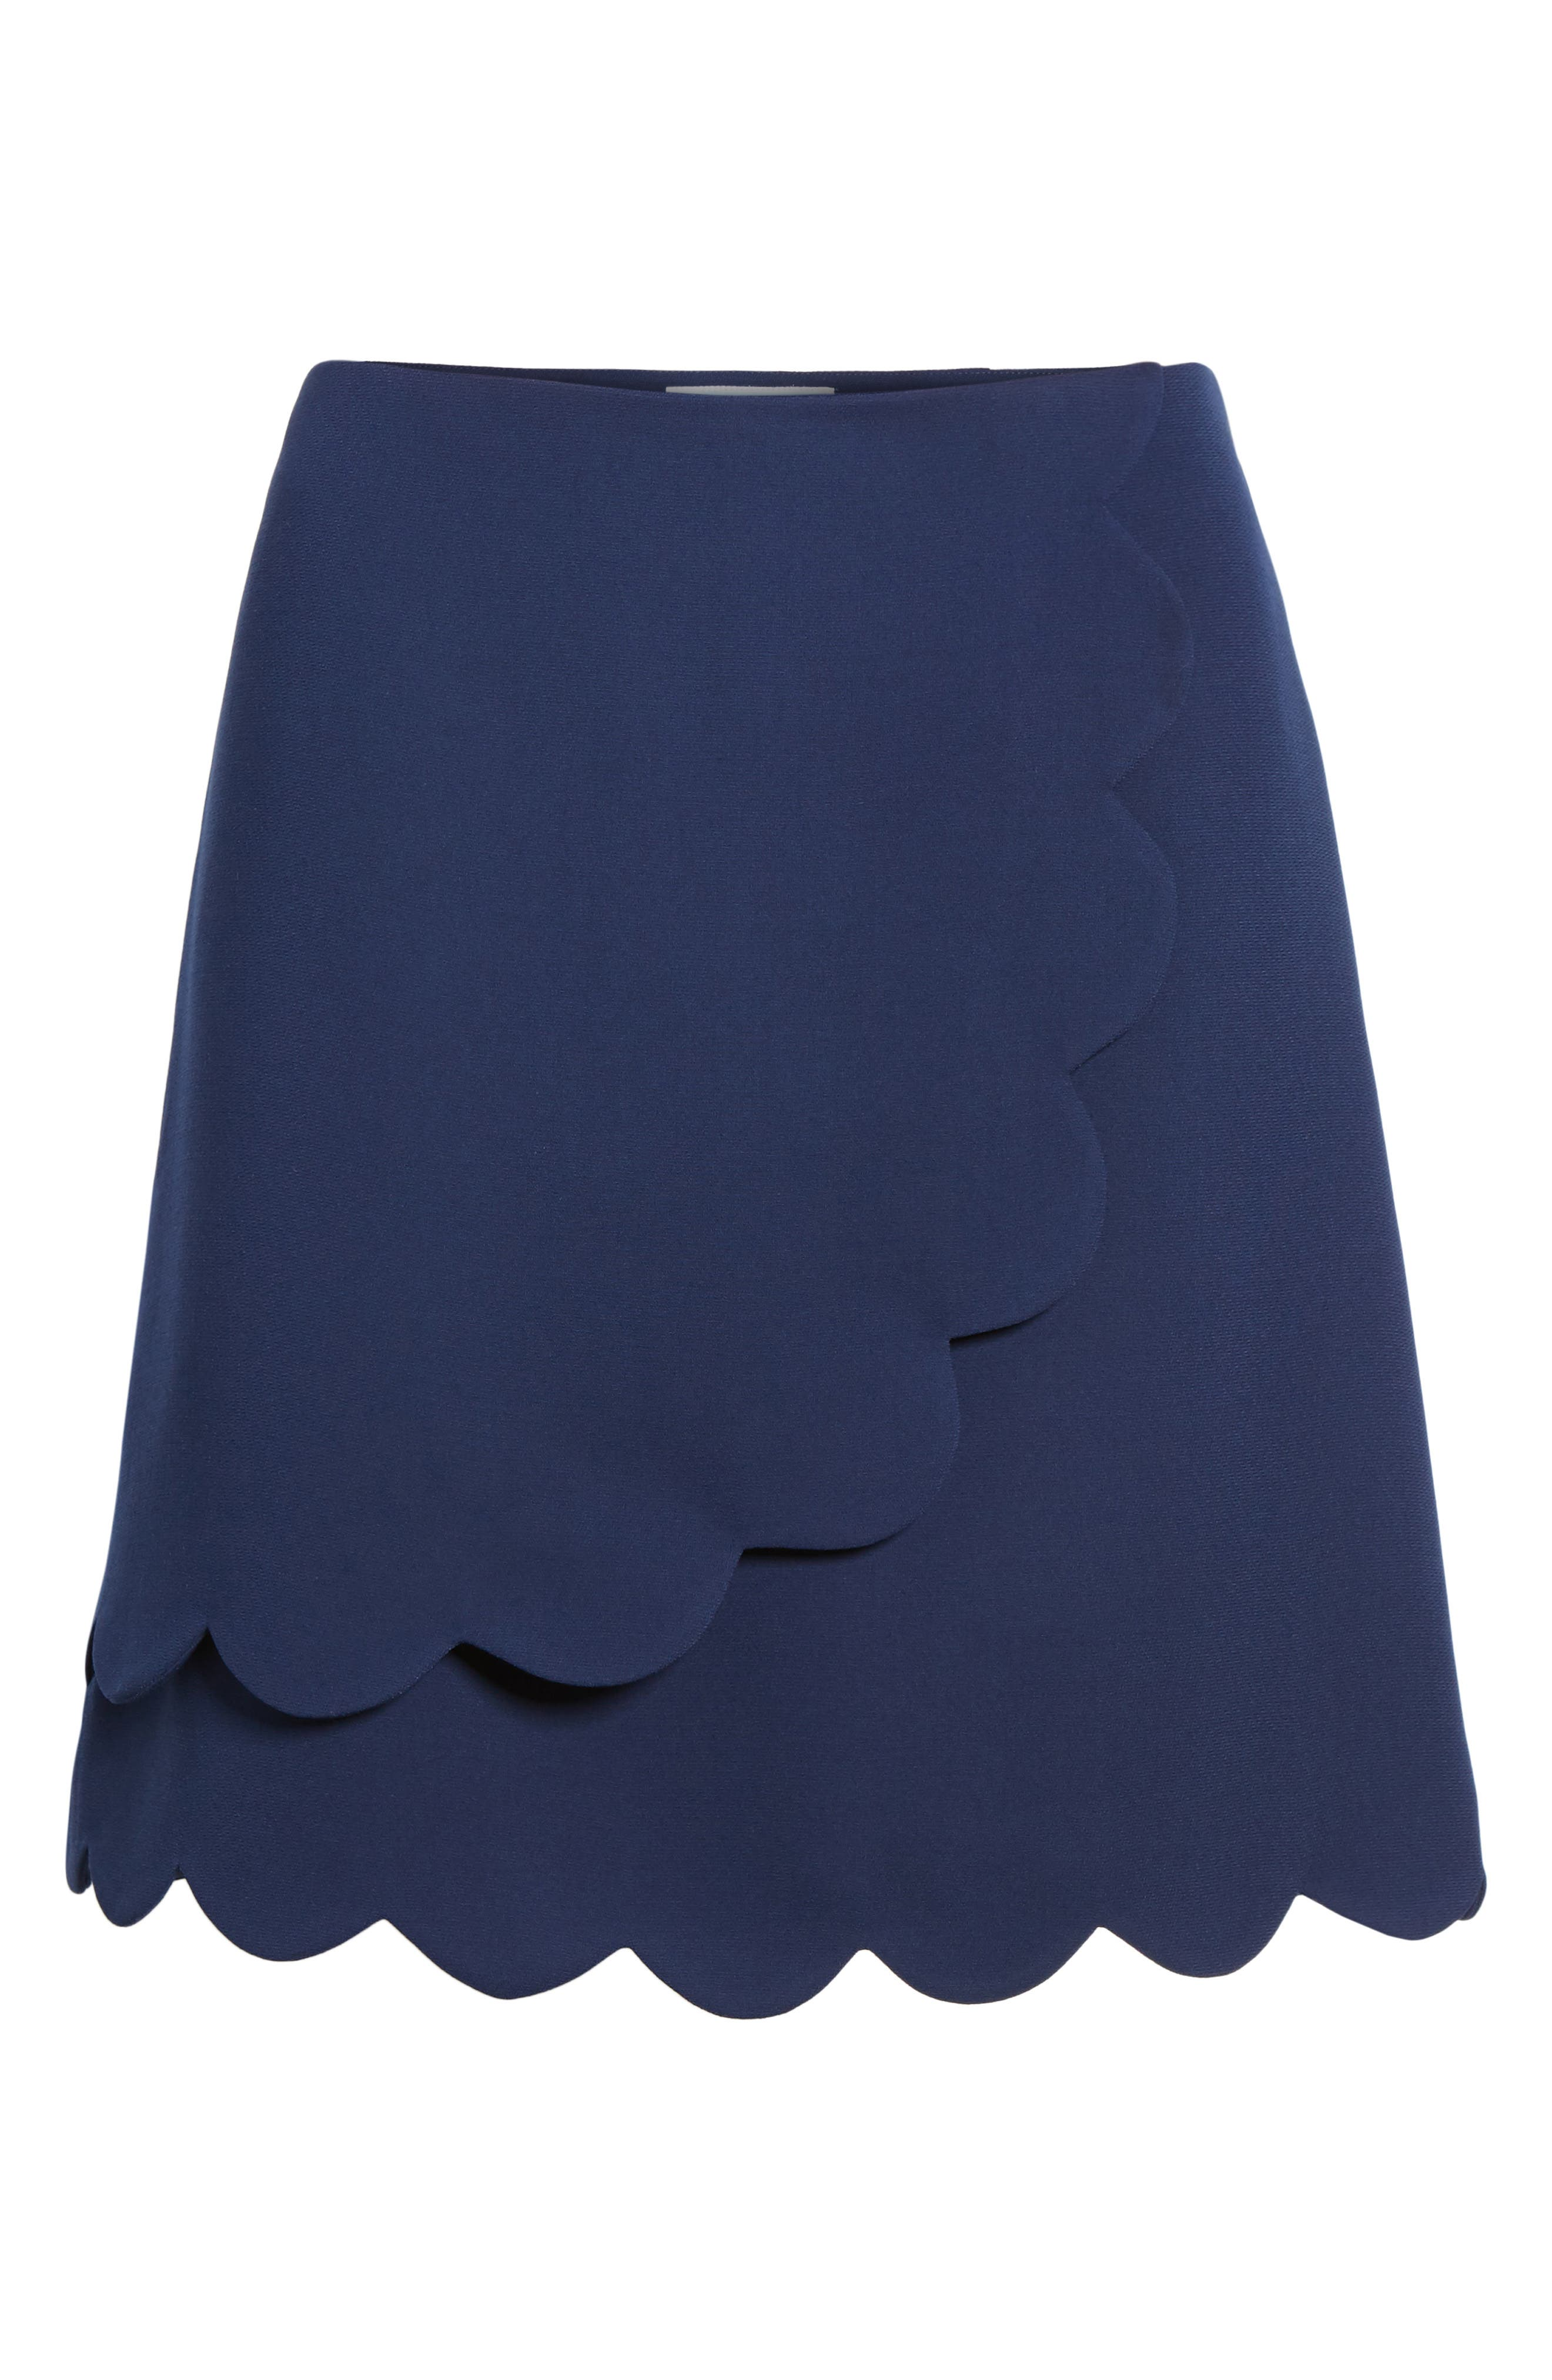 Scallop Skirt,                             Alternate thumbnail 6, color,                             432